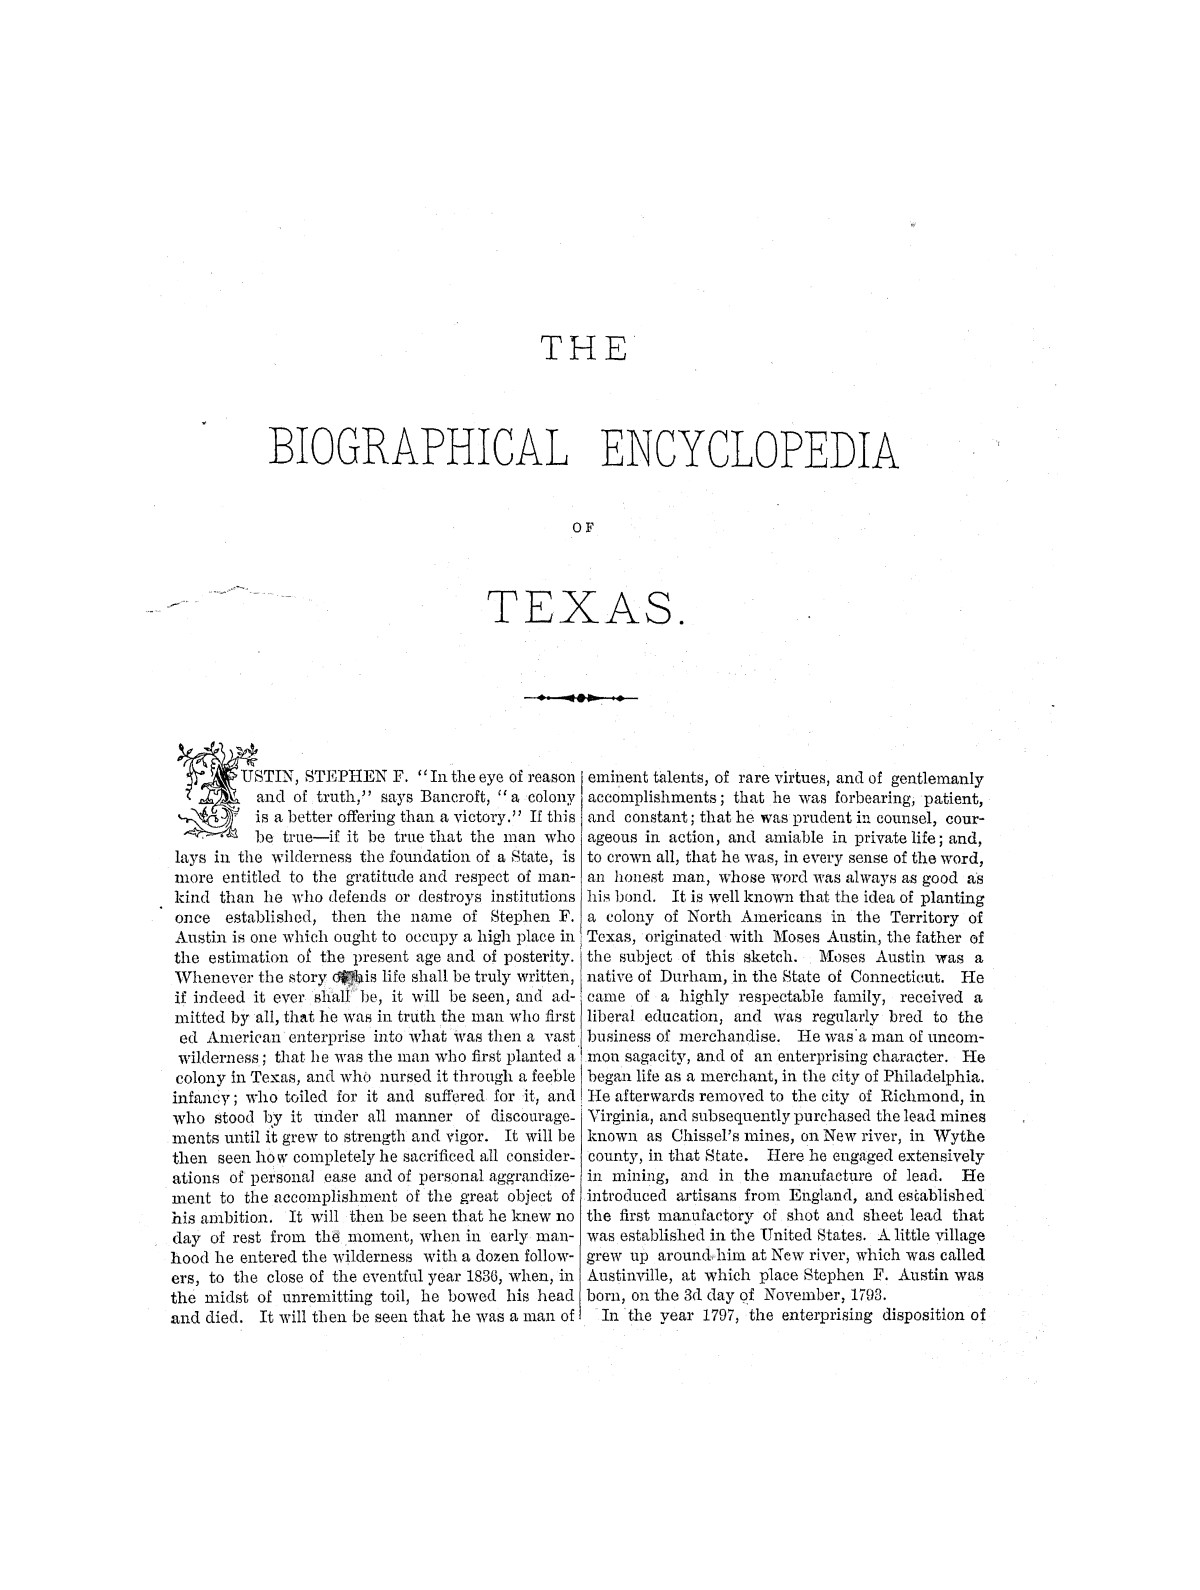 Biographical Encyclopedia of Texas                                                                                                      [Sequence #]: 5 of 372